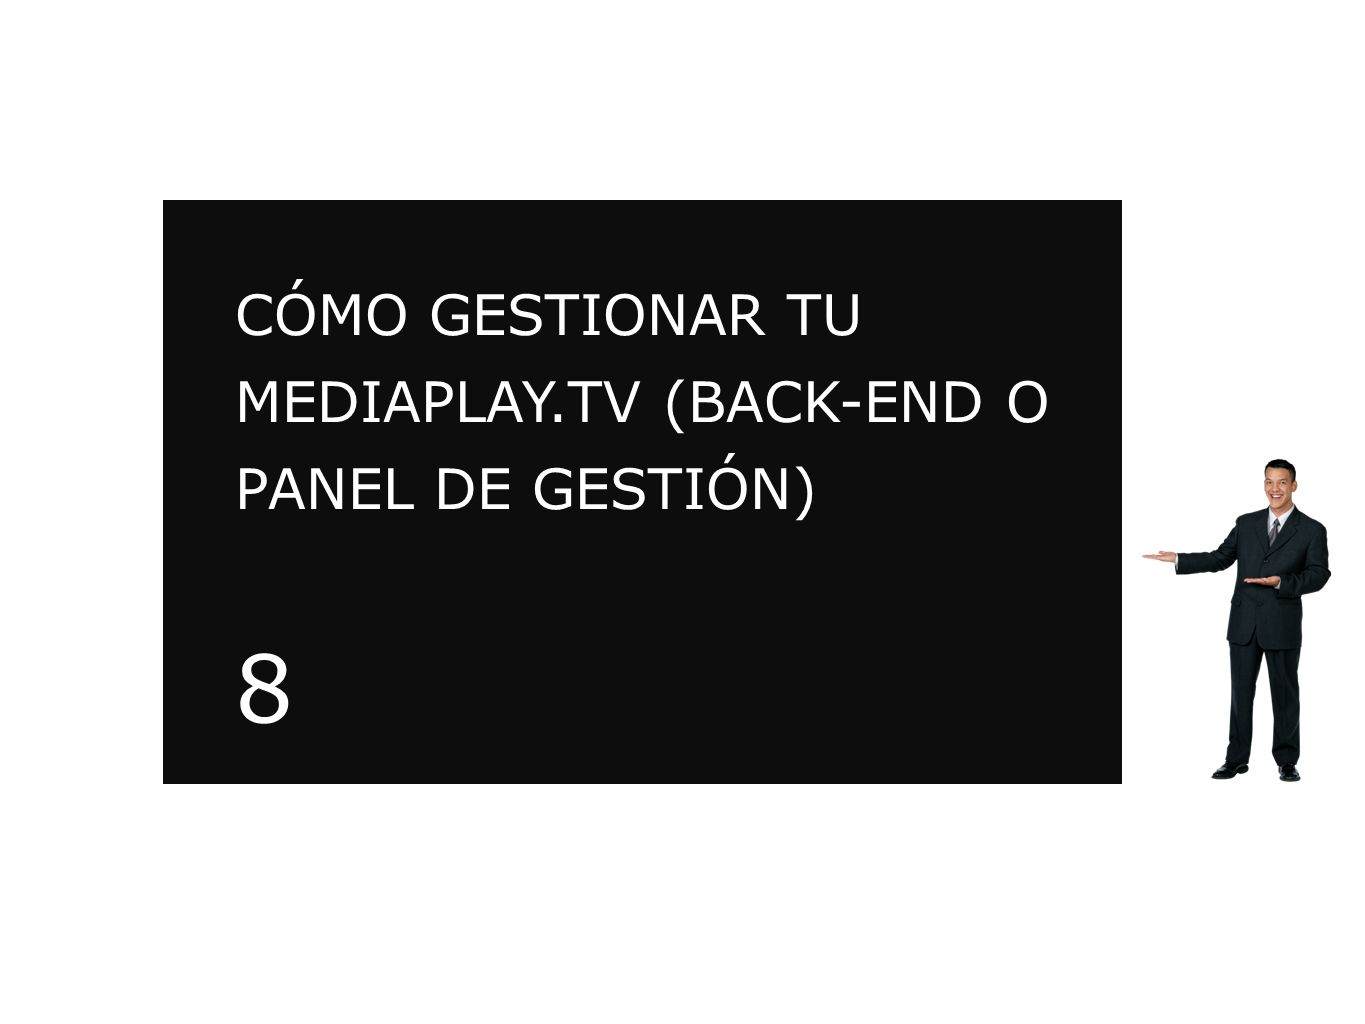 8 CÓMO GESTIONAR TU MEDIAPLAY.TV (BACK-END O PANEL DE GESTIÓN)